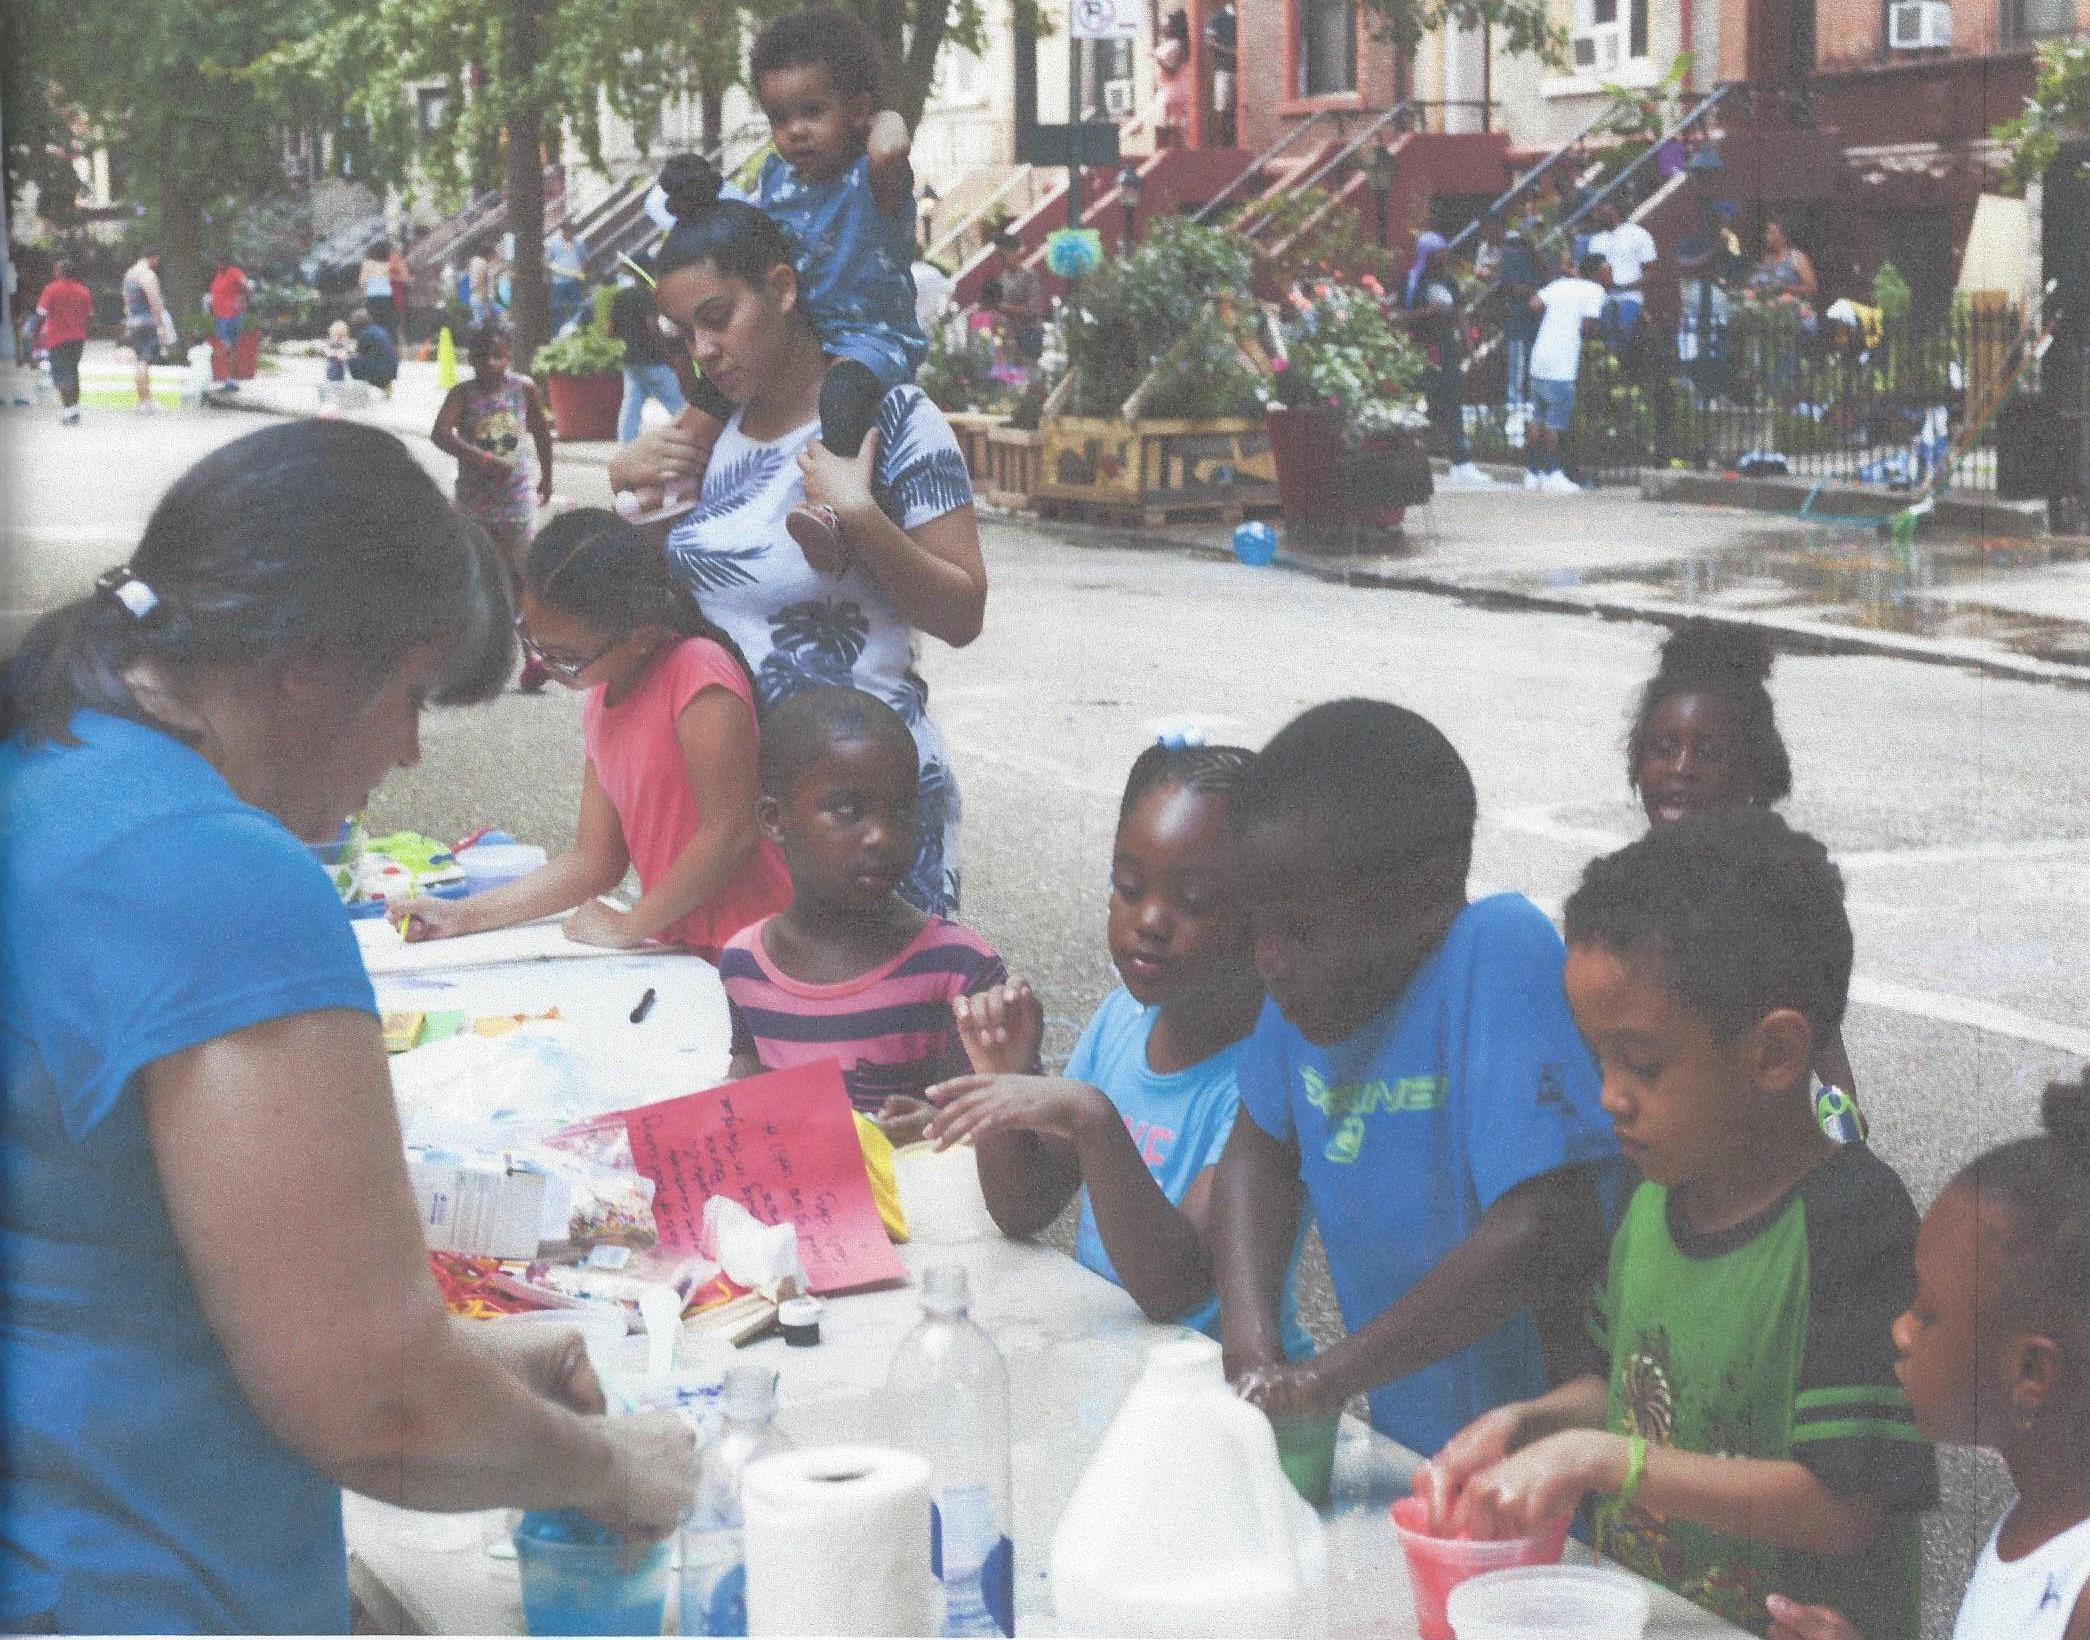 Children at the block party